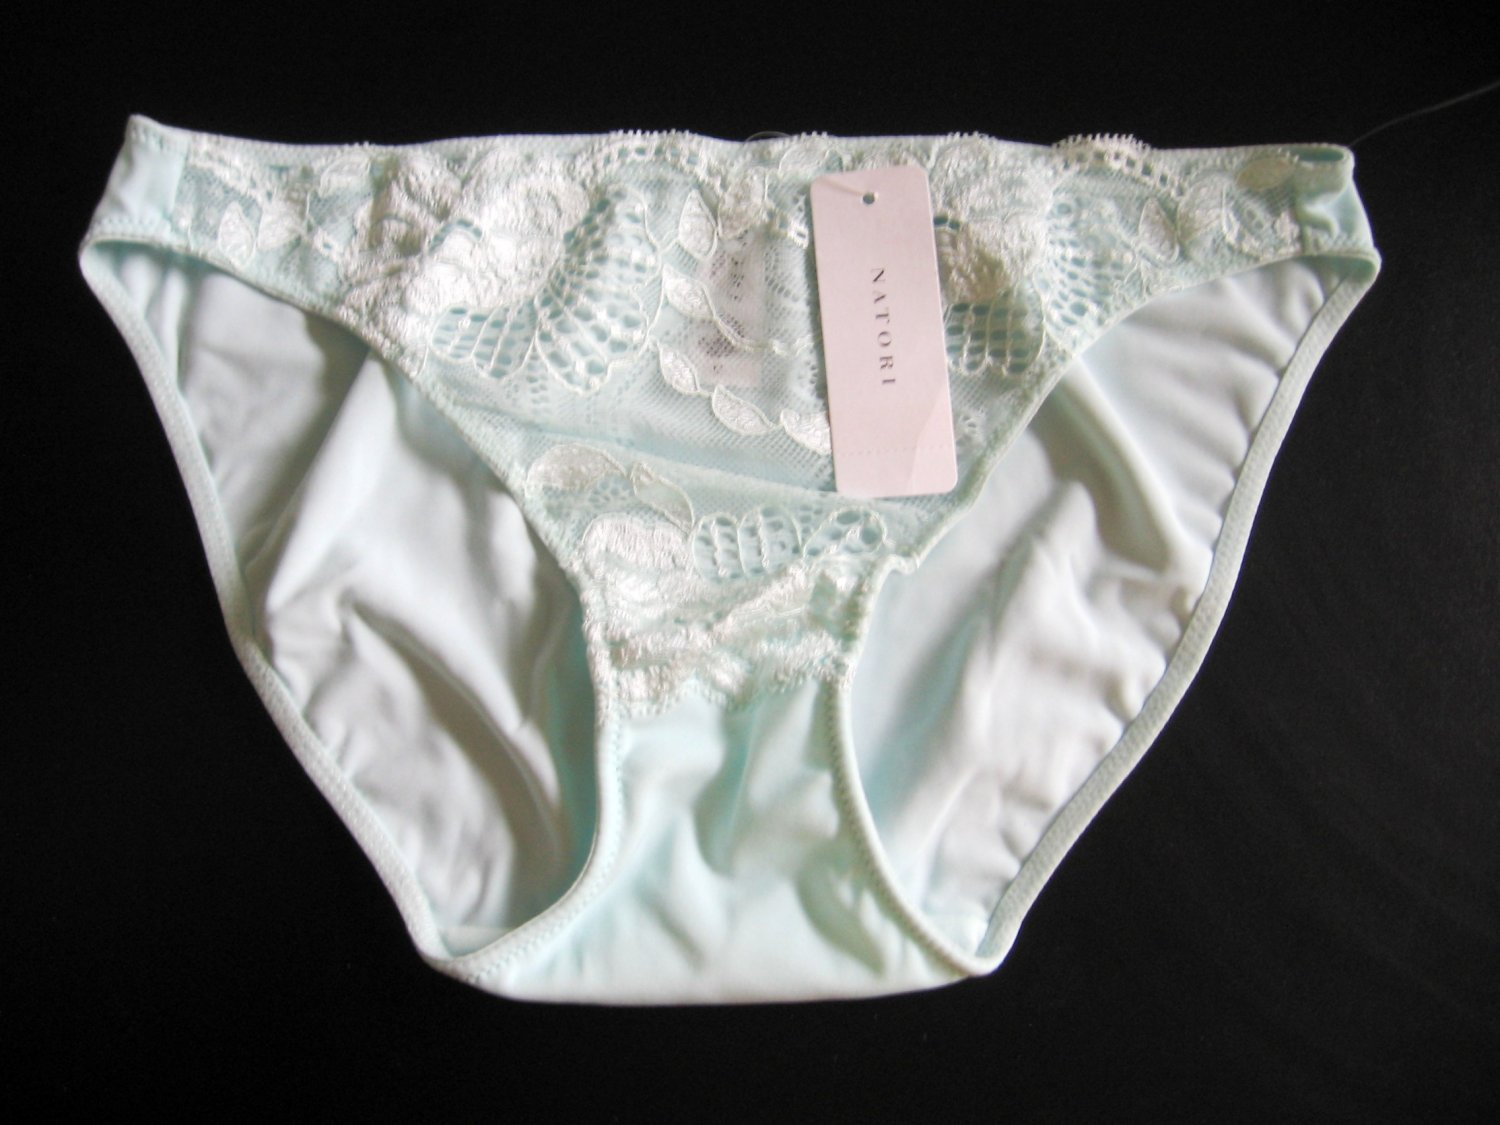 A469 Natori Underneath White Label Zen Floral Embroidered Lace Bikini 153120, SIZE SMALL